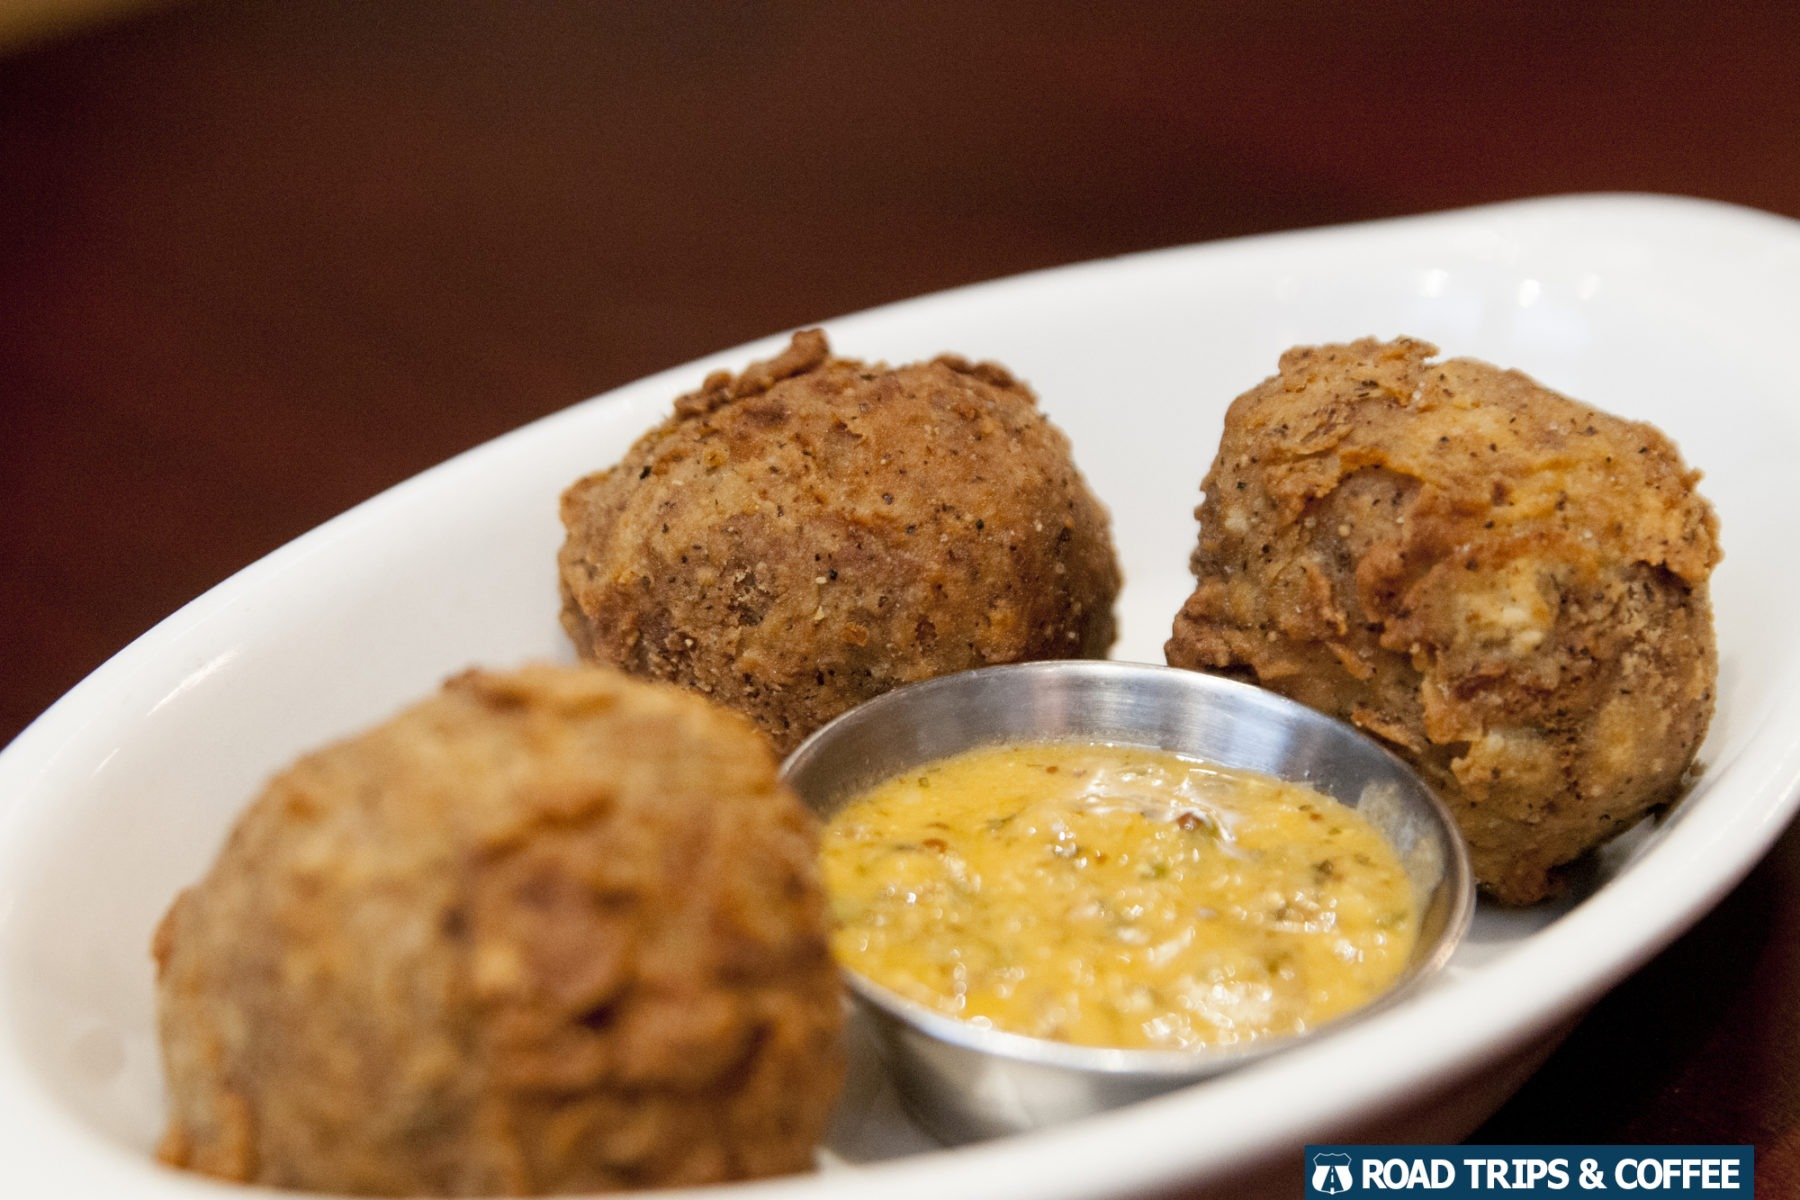 Delicious boudin balls appetizer from Roux Americajun in Clarksville, Tennessee